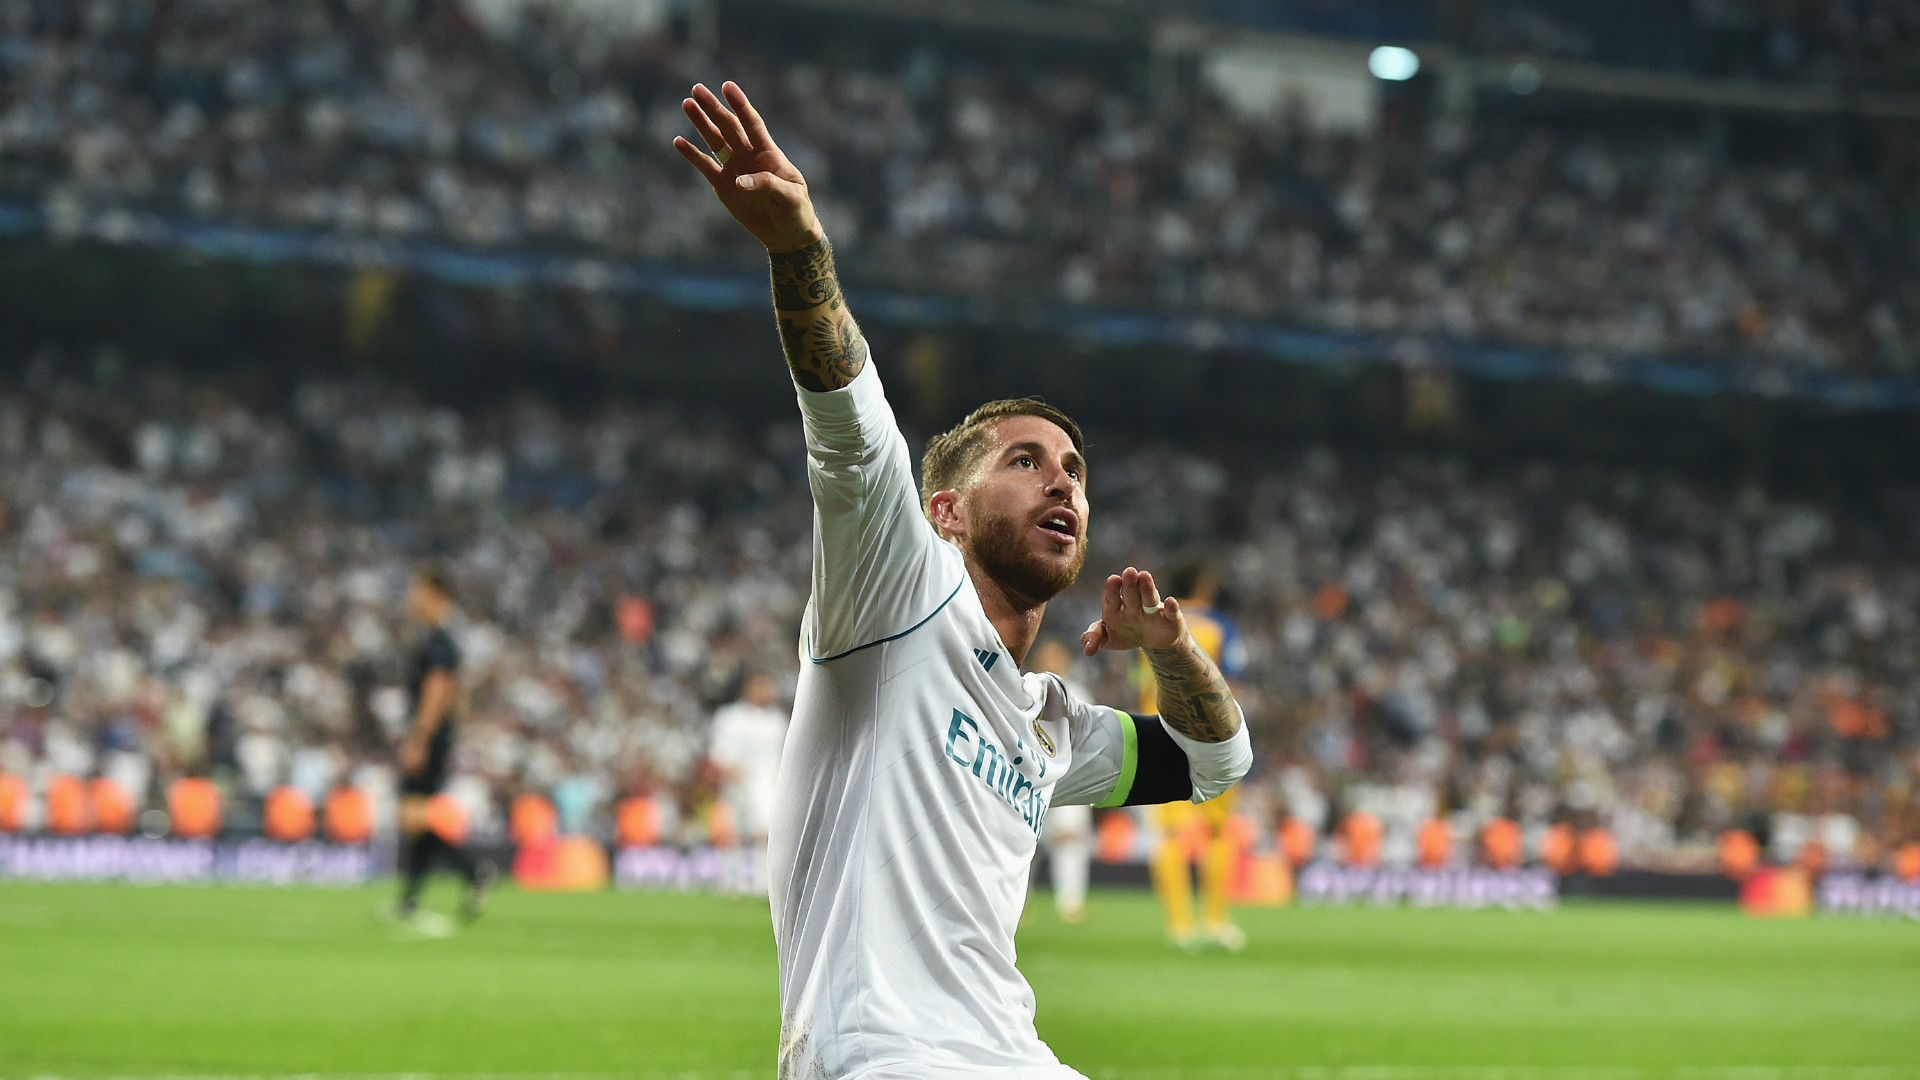 Fifa 18 ultimate 11 sergio ramos voted best center back - Sergio madrid ...